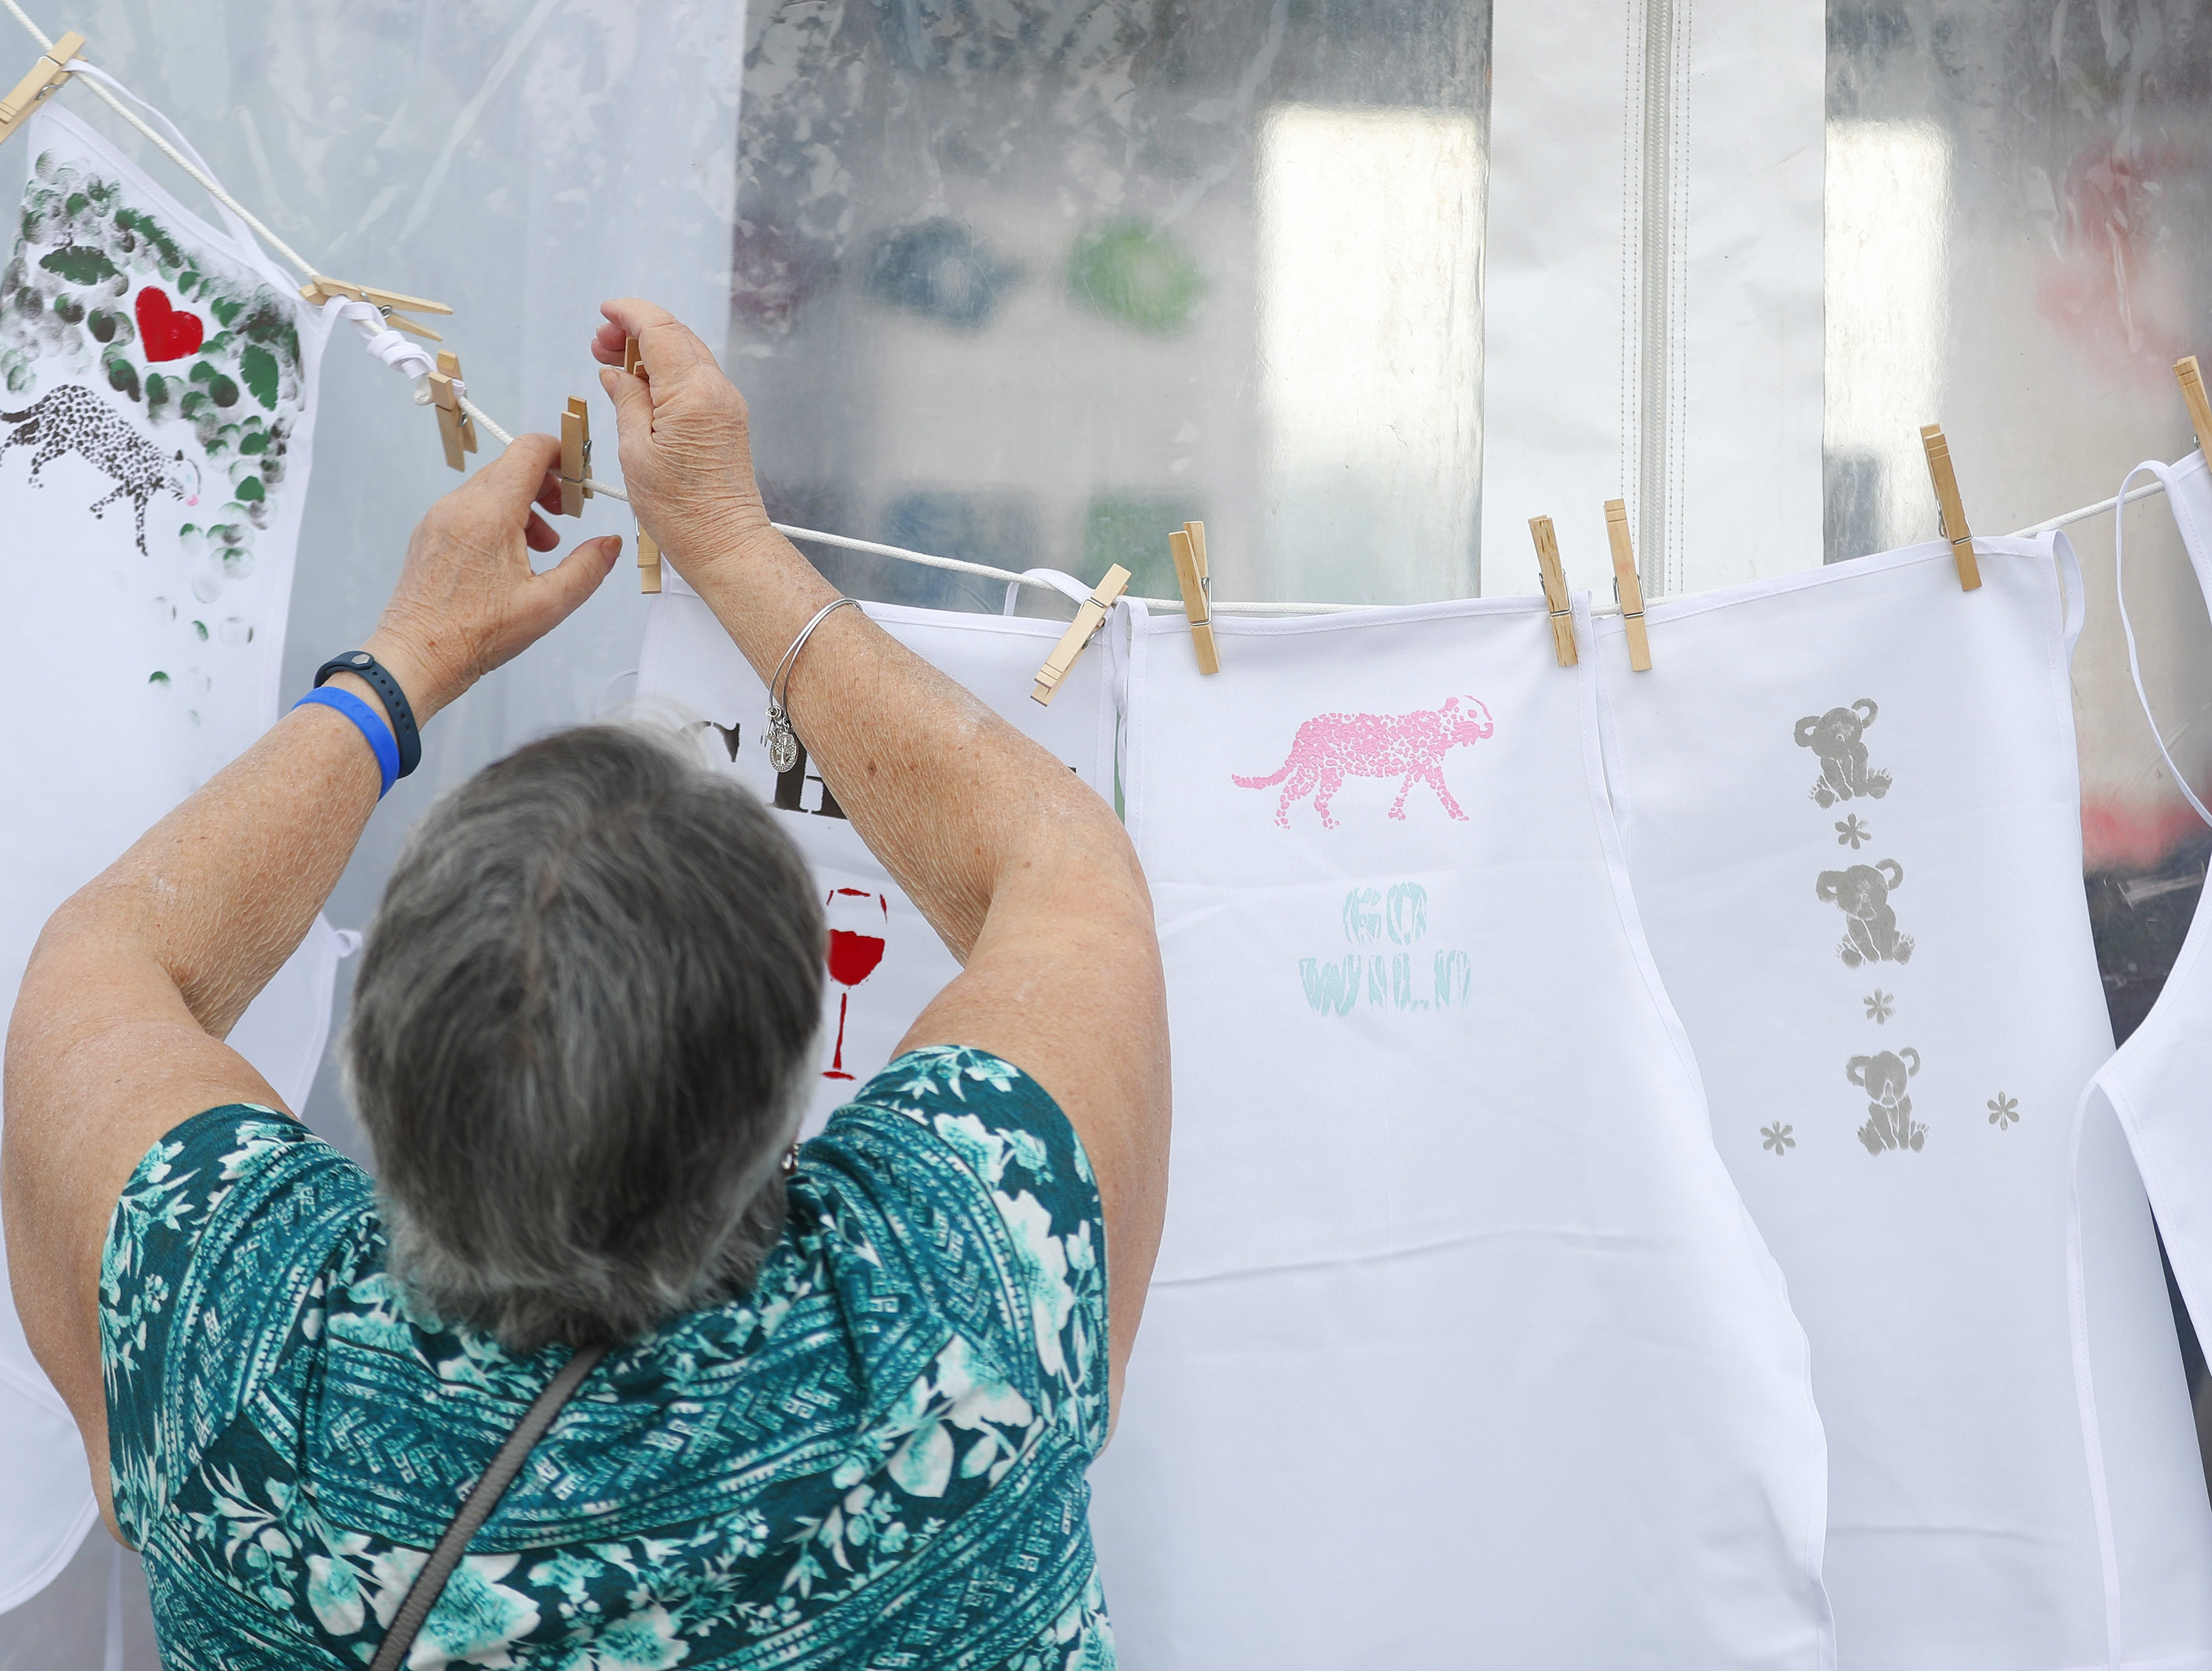 Aprons are hung to dry during the azcentral Wine & Food Experience at WestWorld of Scottsdale, Ariz. on Nov. 4, 2018.